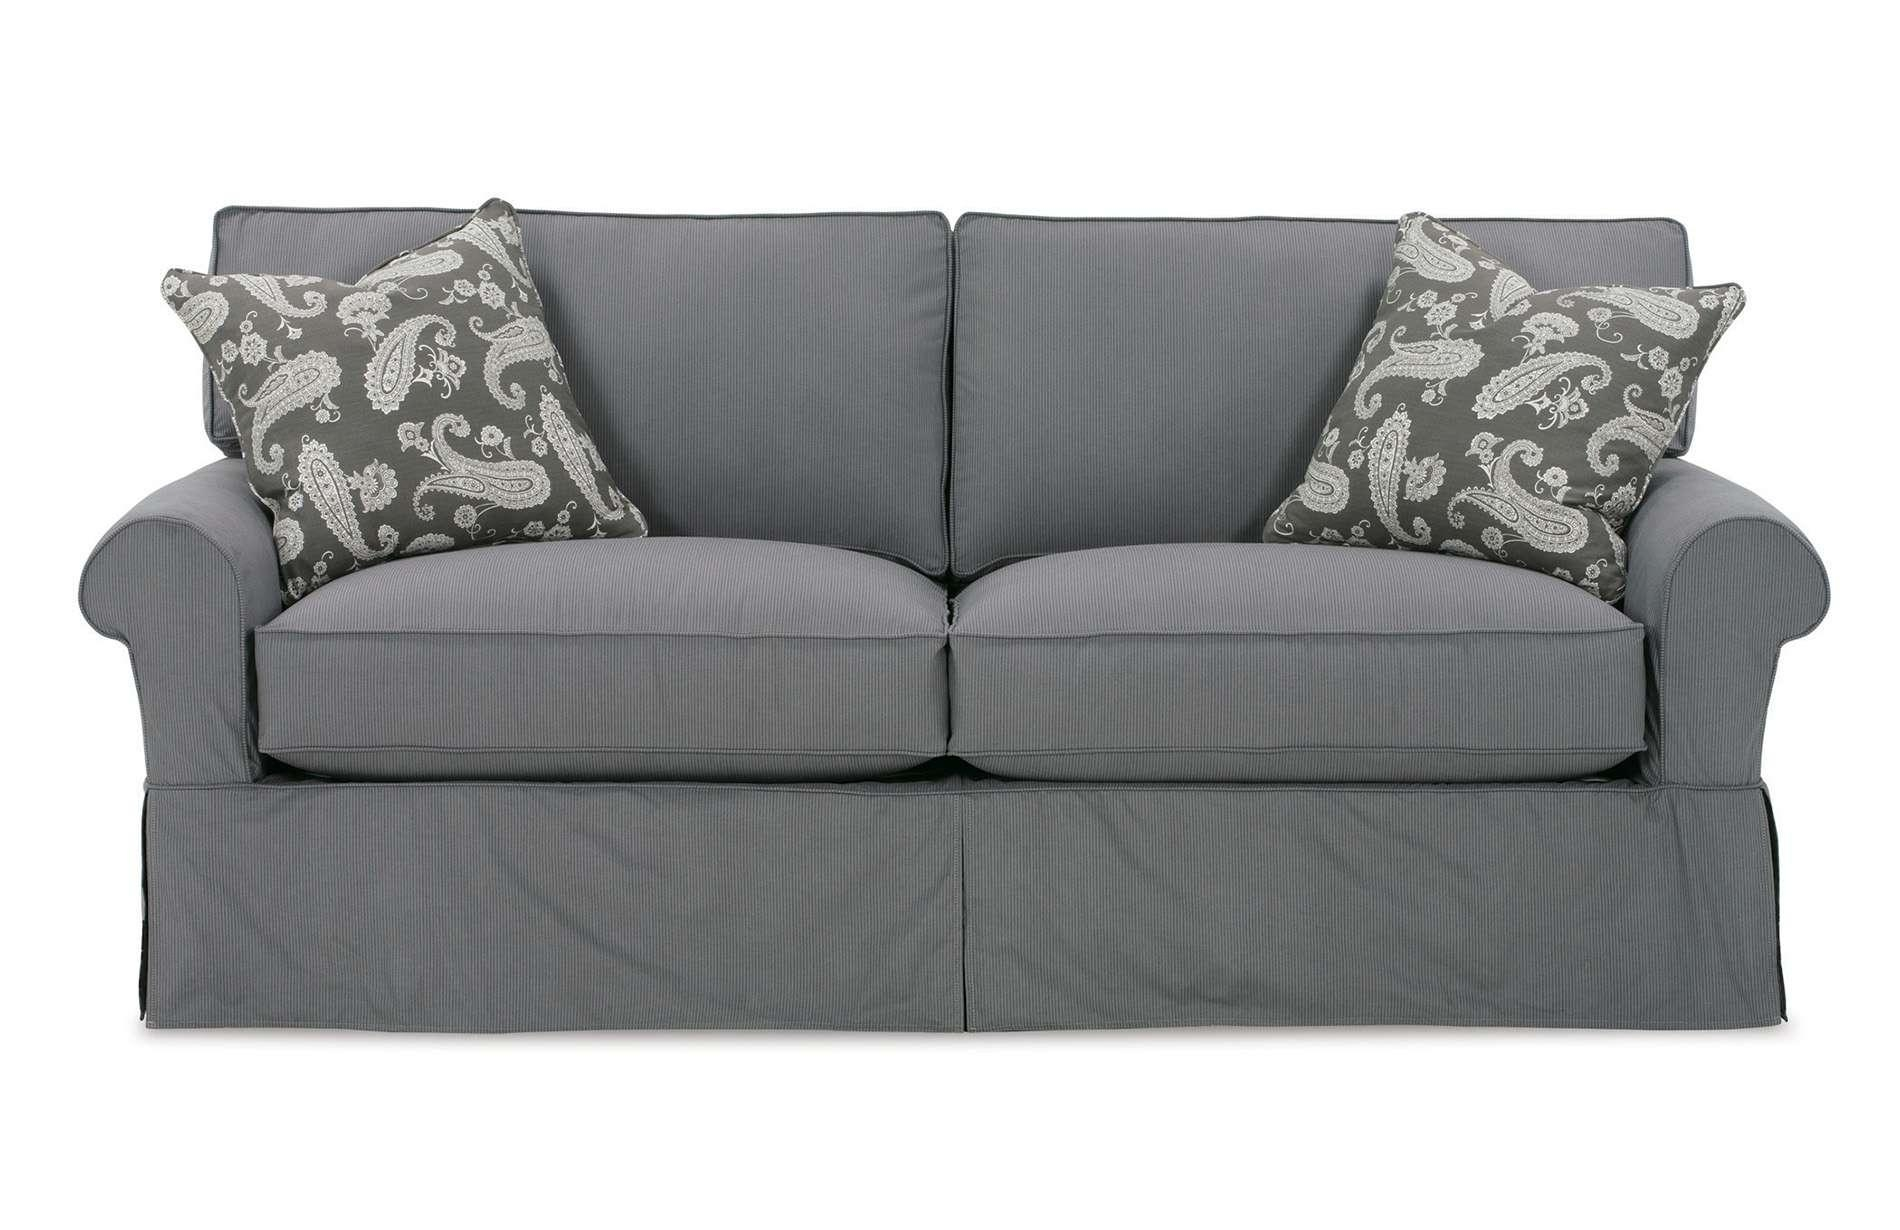 Queen Sleeper Sofa Slipcover - Tourdecarroll regarding King Size Sleeper Sofa Sectional